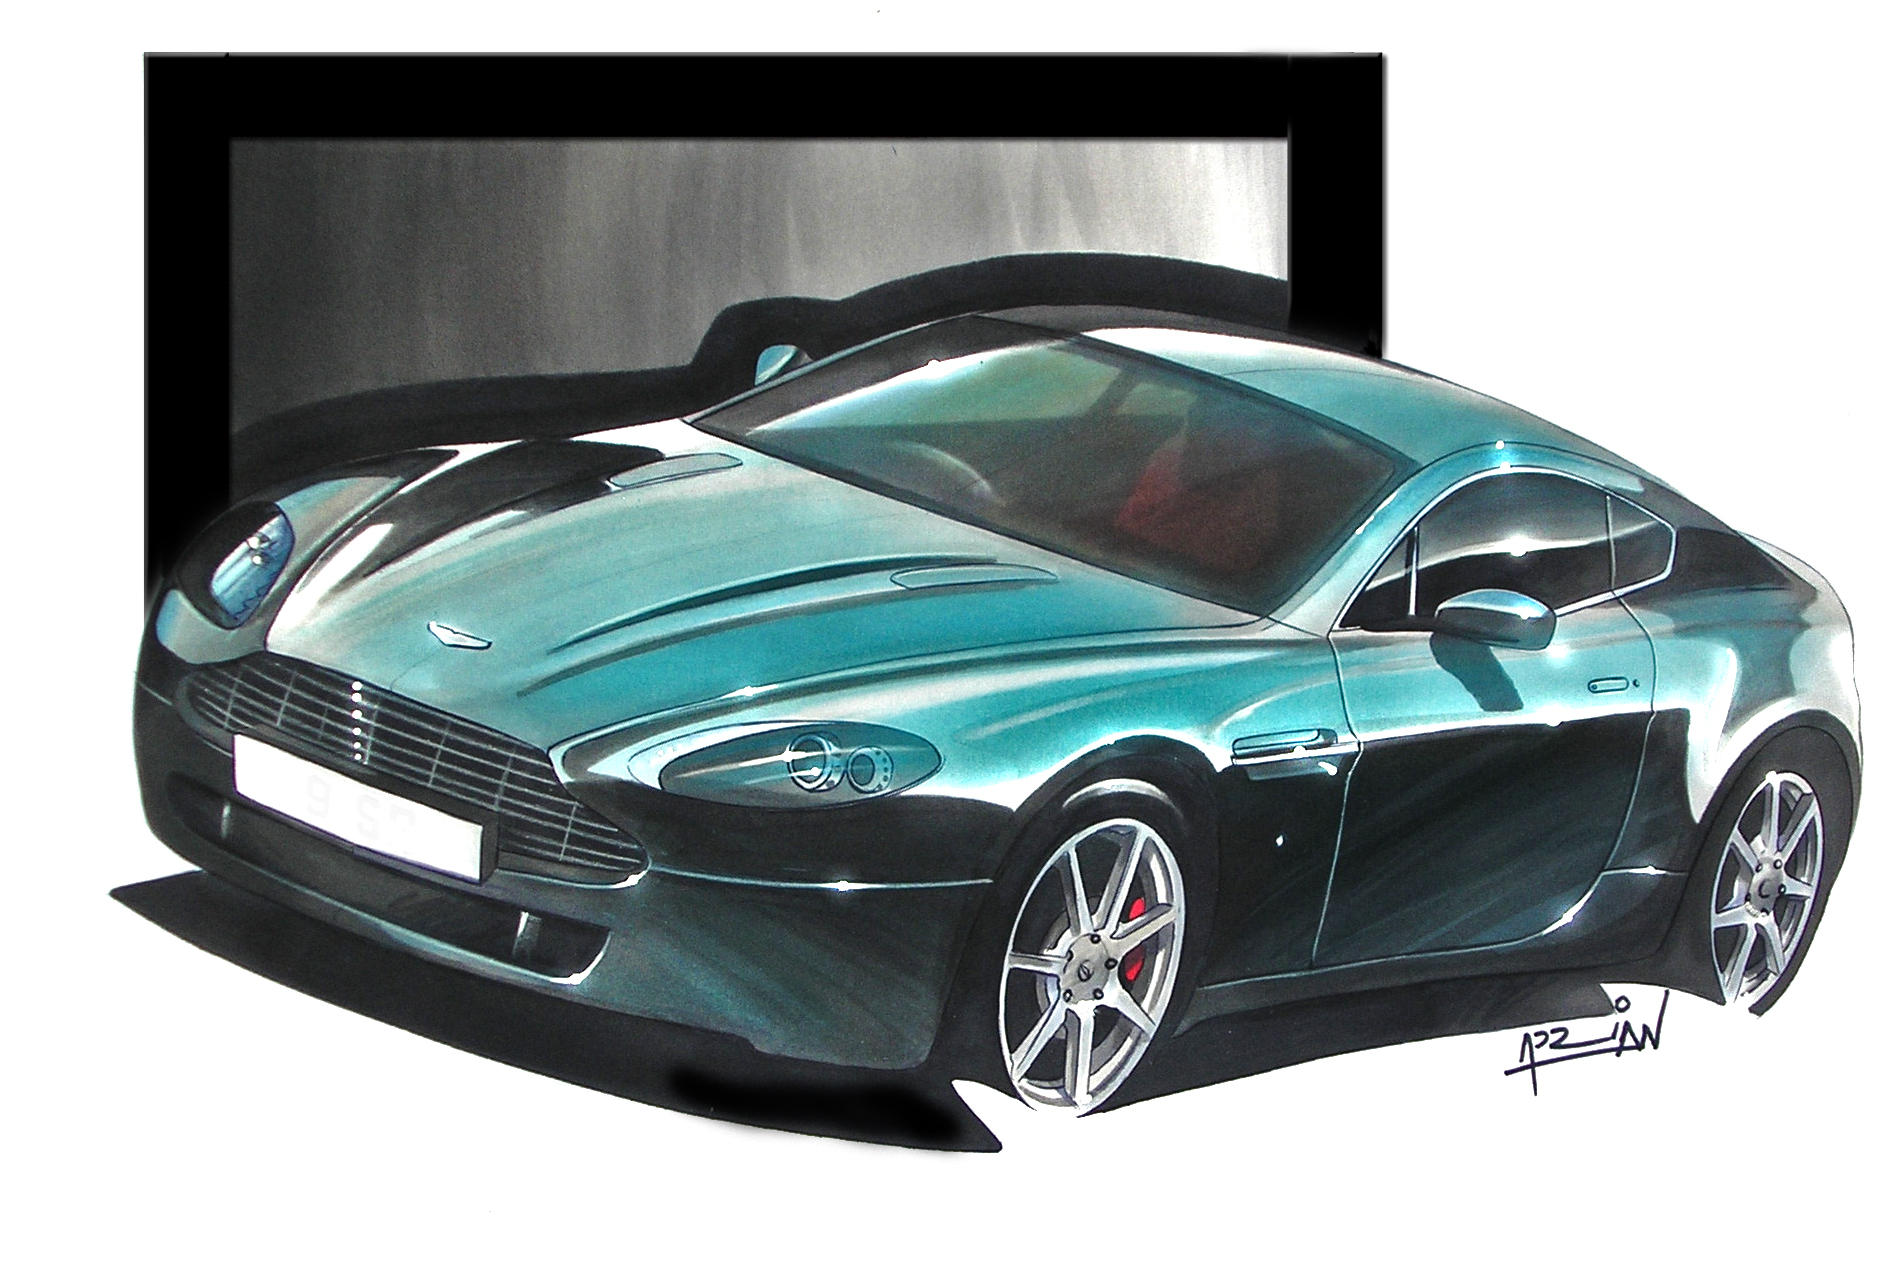 aston martin amv8 by auto concept on deviantart. Black Bedroom Furniture Sets. Home Design Ideas